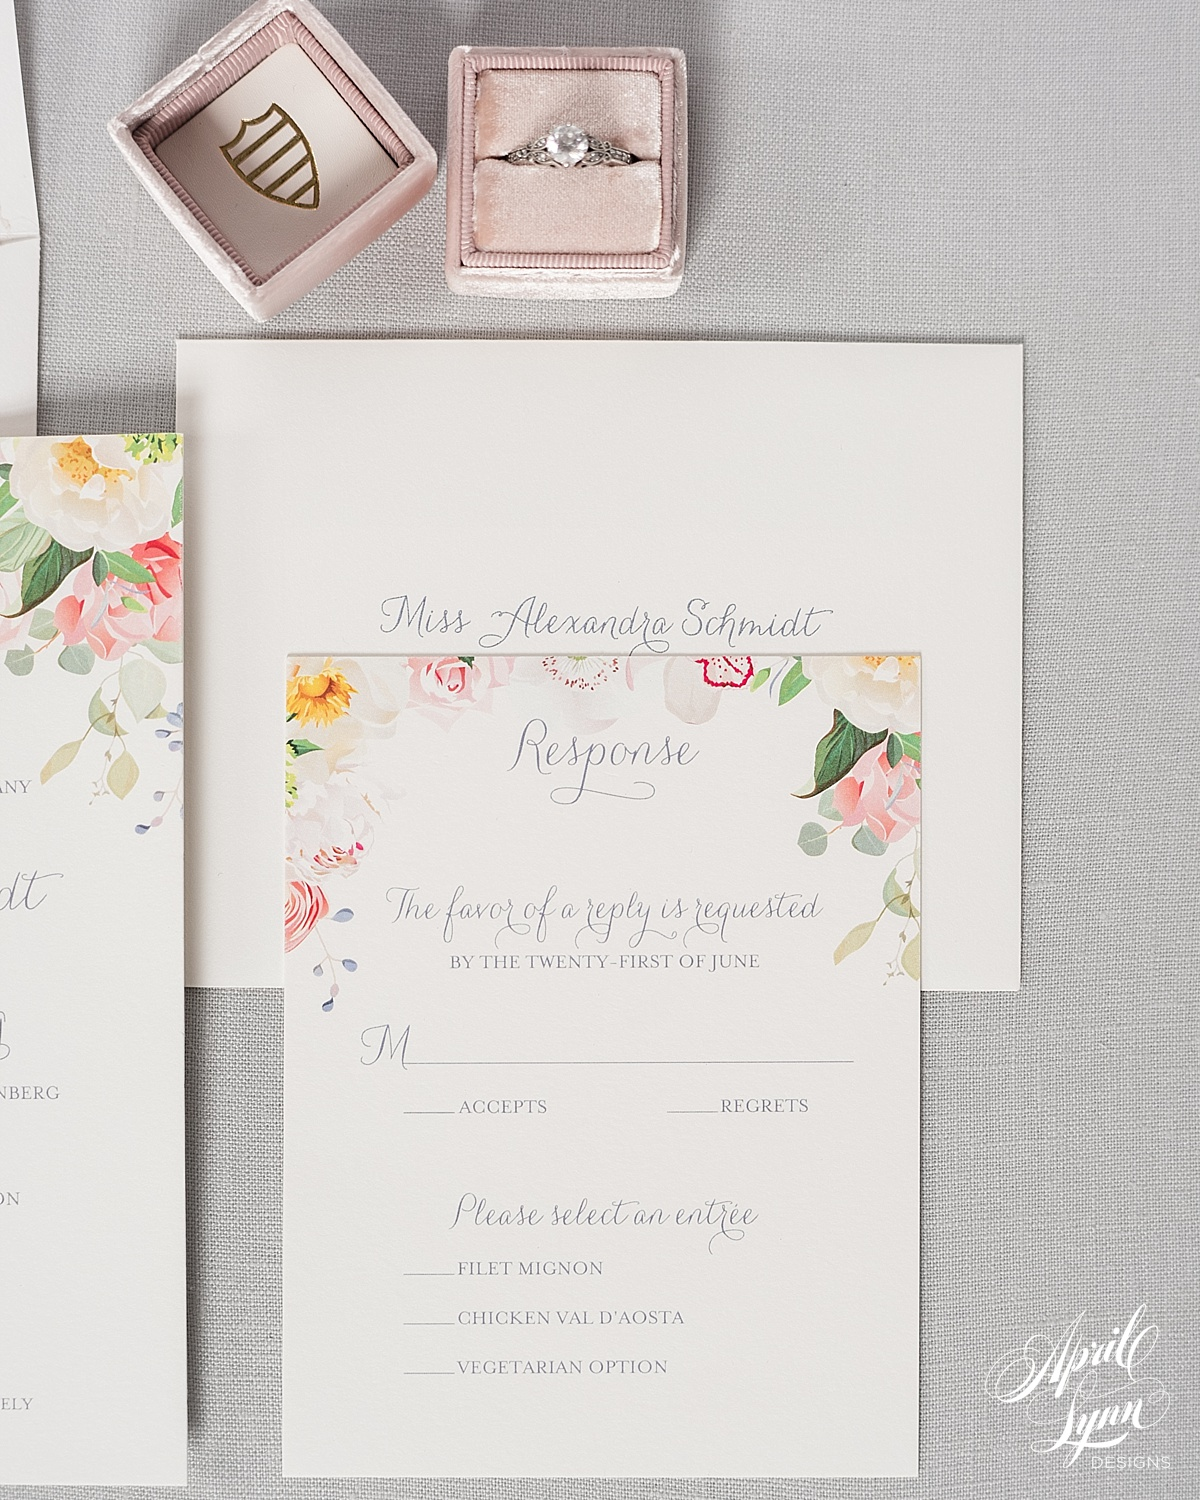 Rustic Chic Floral Wedding Invitation | www.aprillynndesigns.com